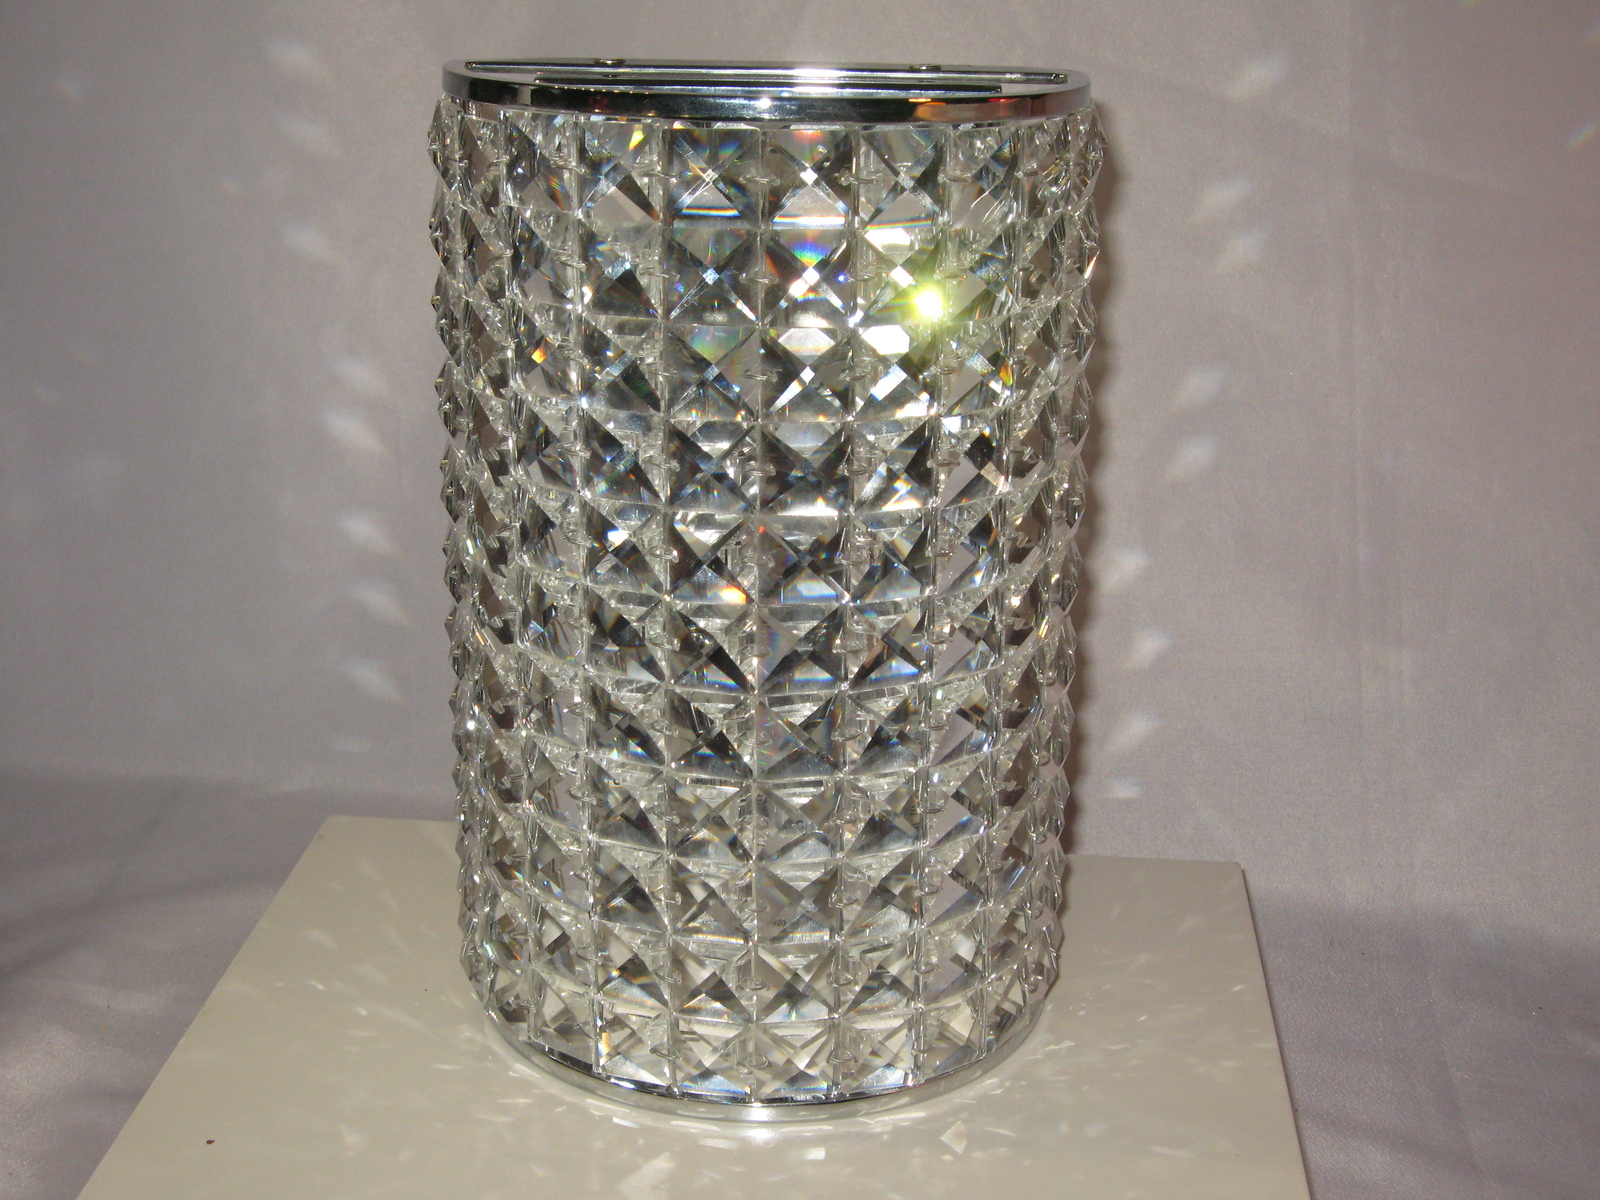 Sconce by Quoizel Lighting - $60.00